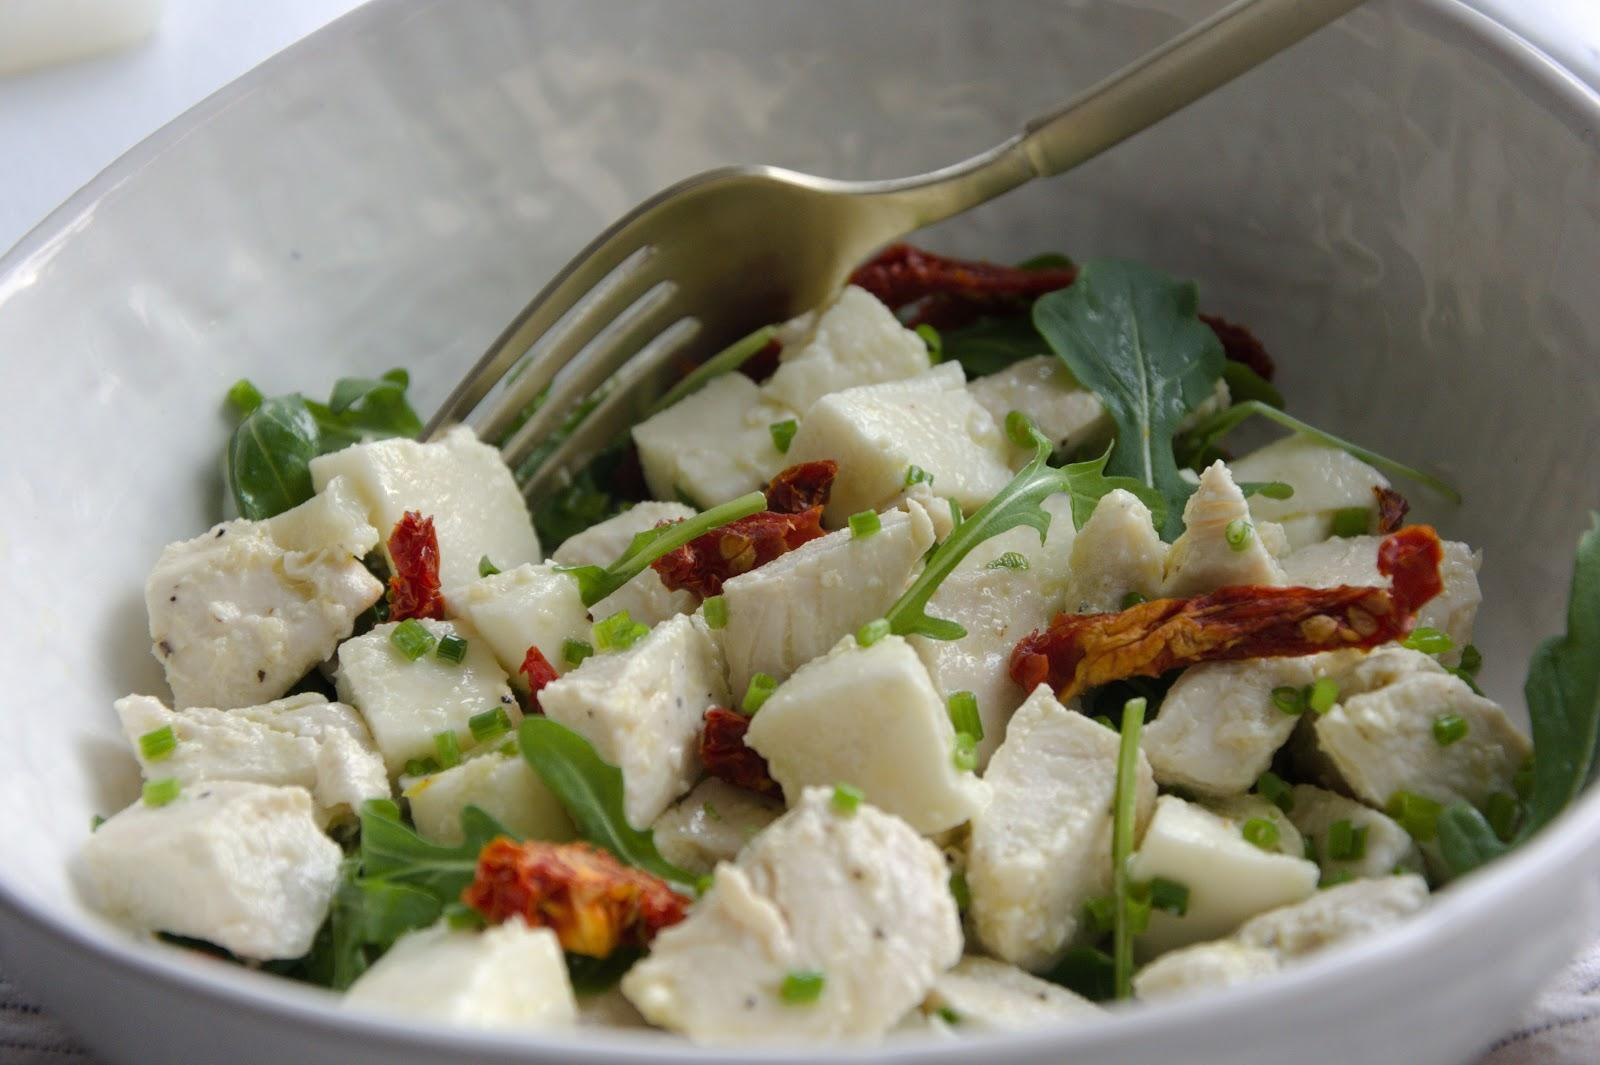 An example of clean eating - Mozzarella and chicken tossed with arugula, sun dried tomatoes and vinaigrette.